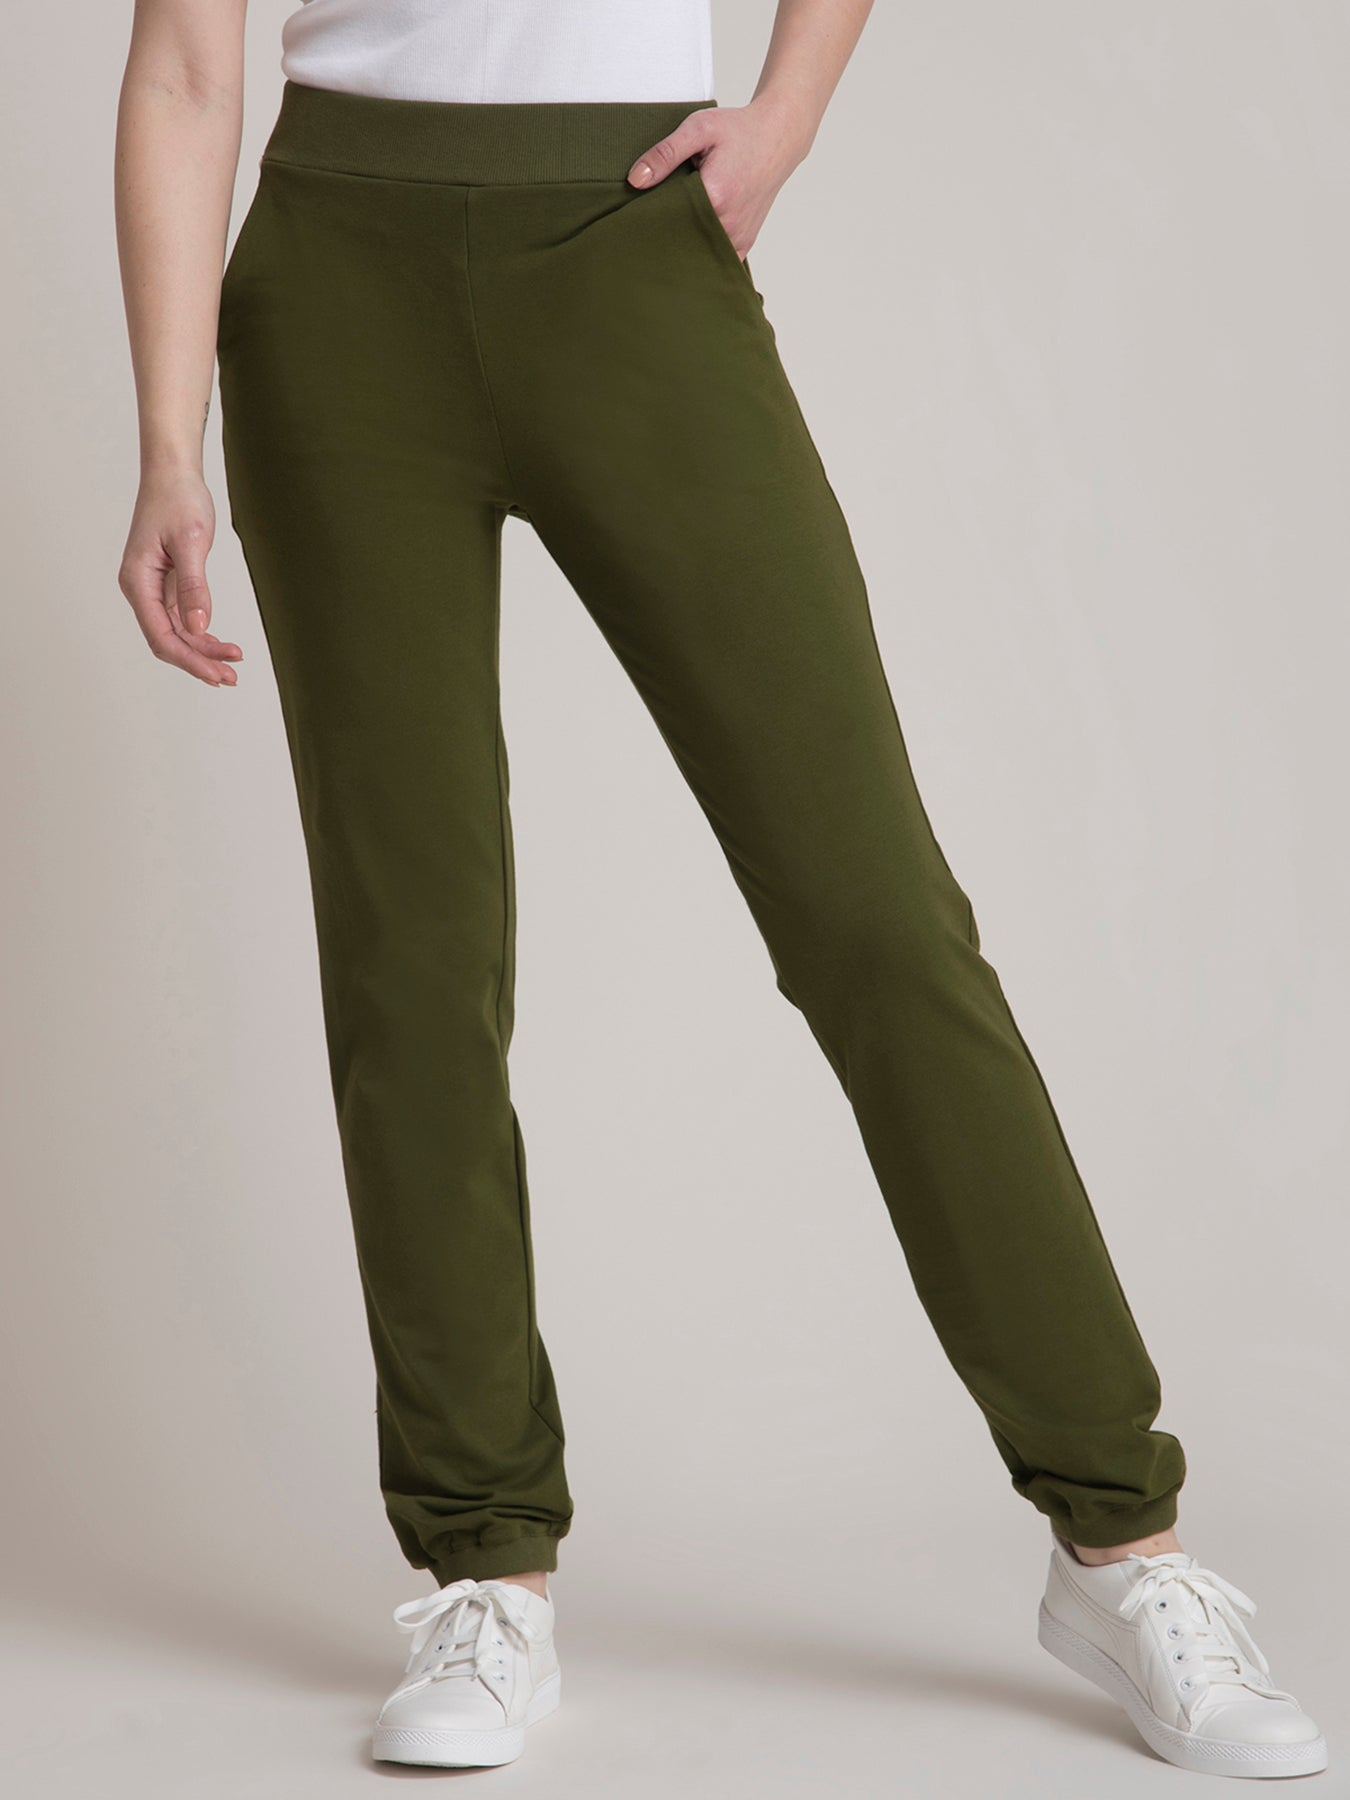 4 Way Stretch LivIn Joggers - Olive